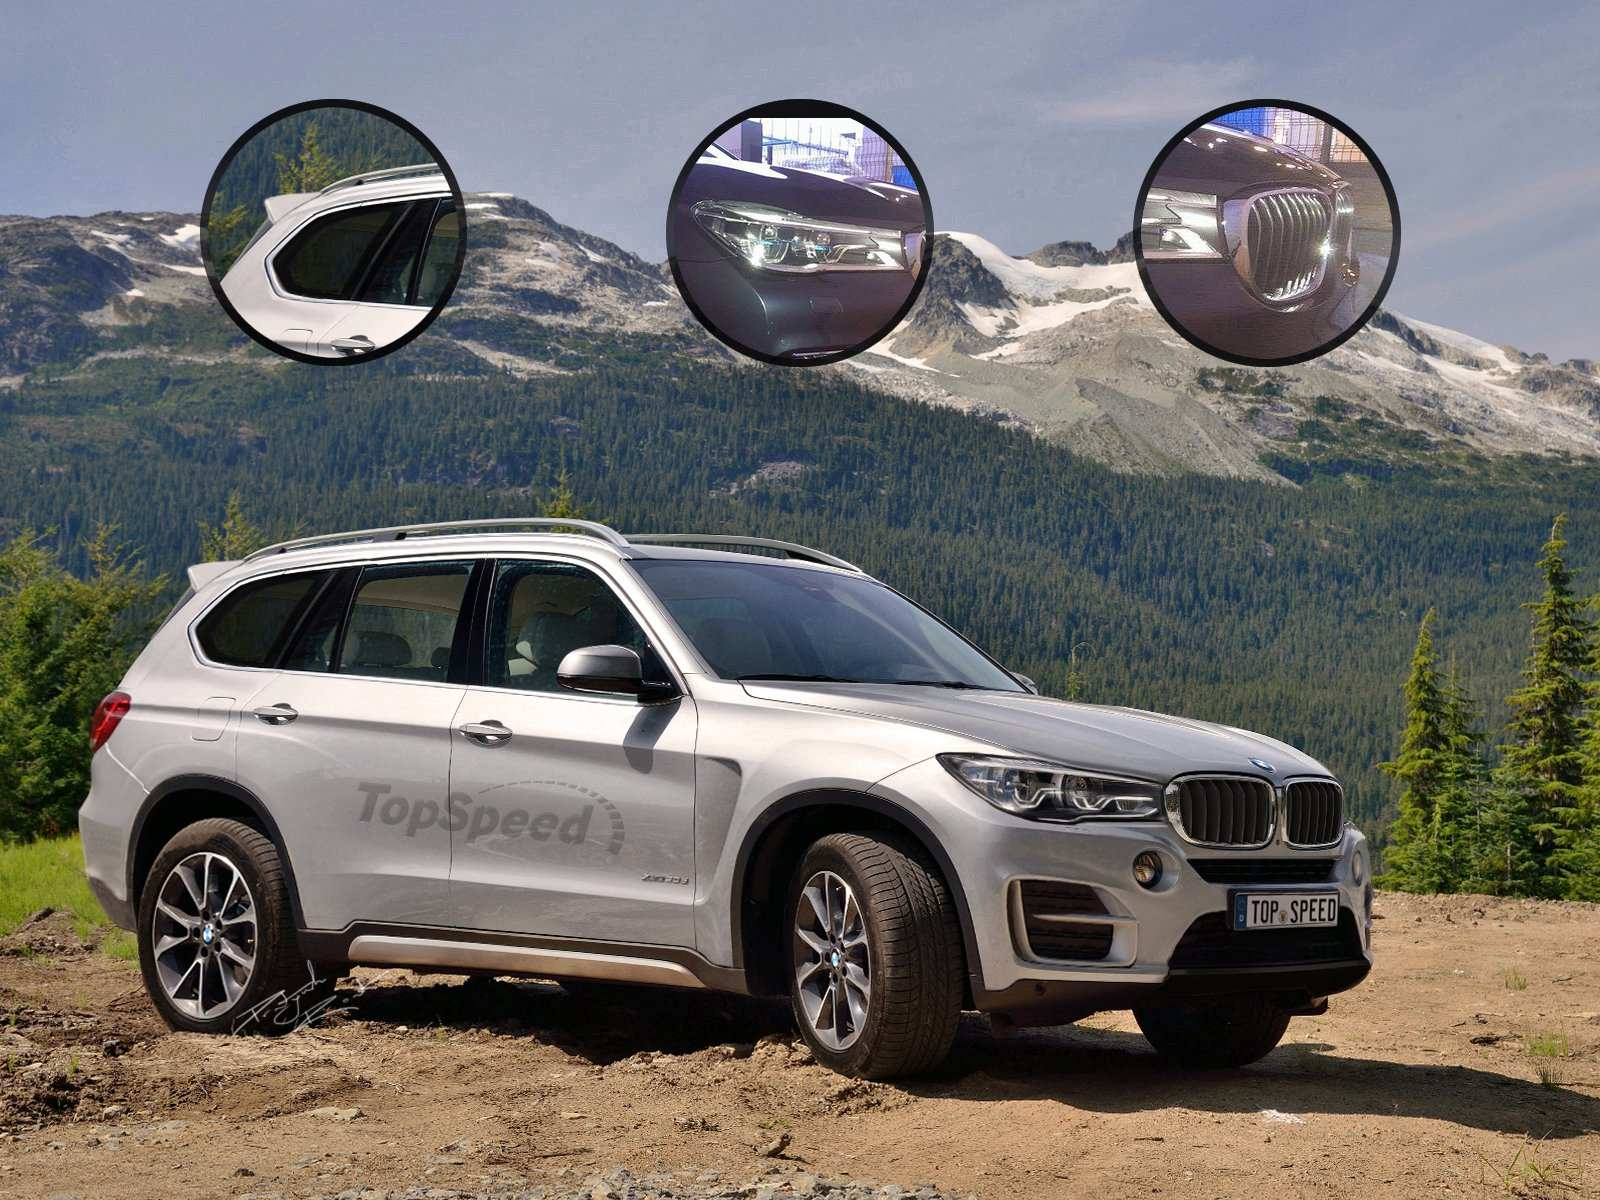 37 Concept of 2020 BMW X7 Suv Engine with 2020 BMW X7 Suv